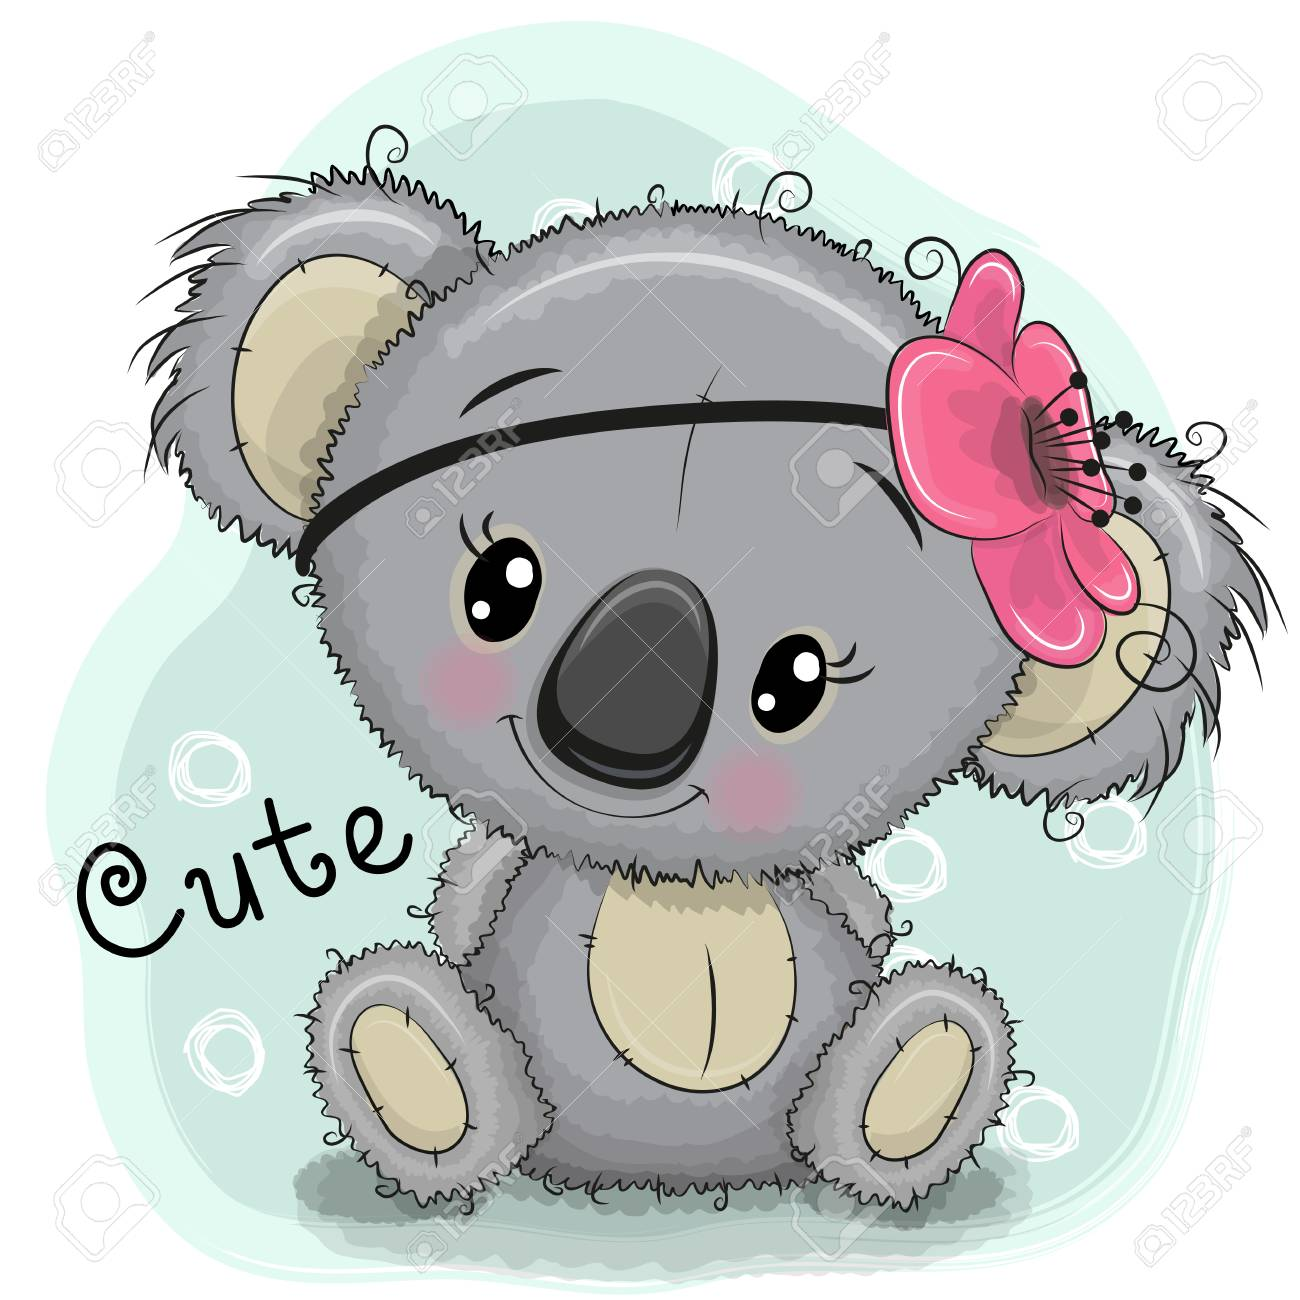 Cute Drawing Koala Girl Isolated On A Blue Background Royalty Free